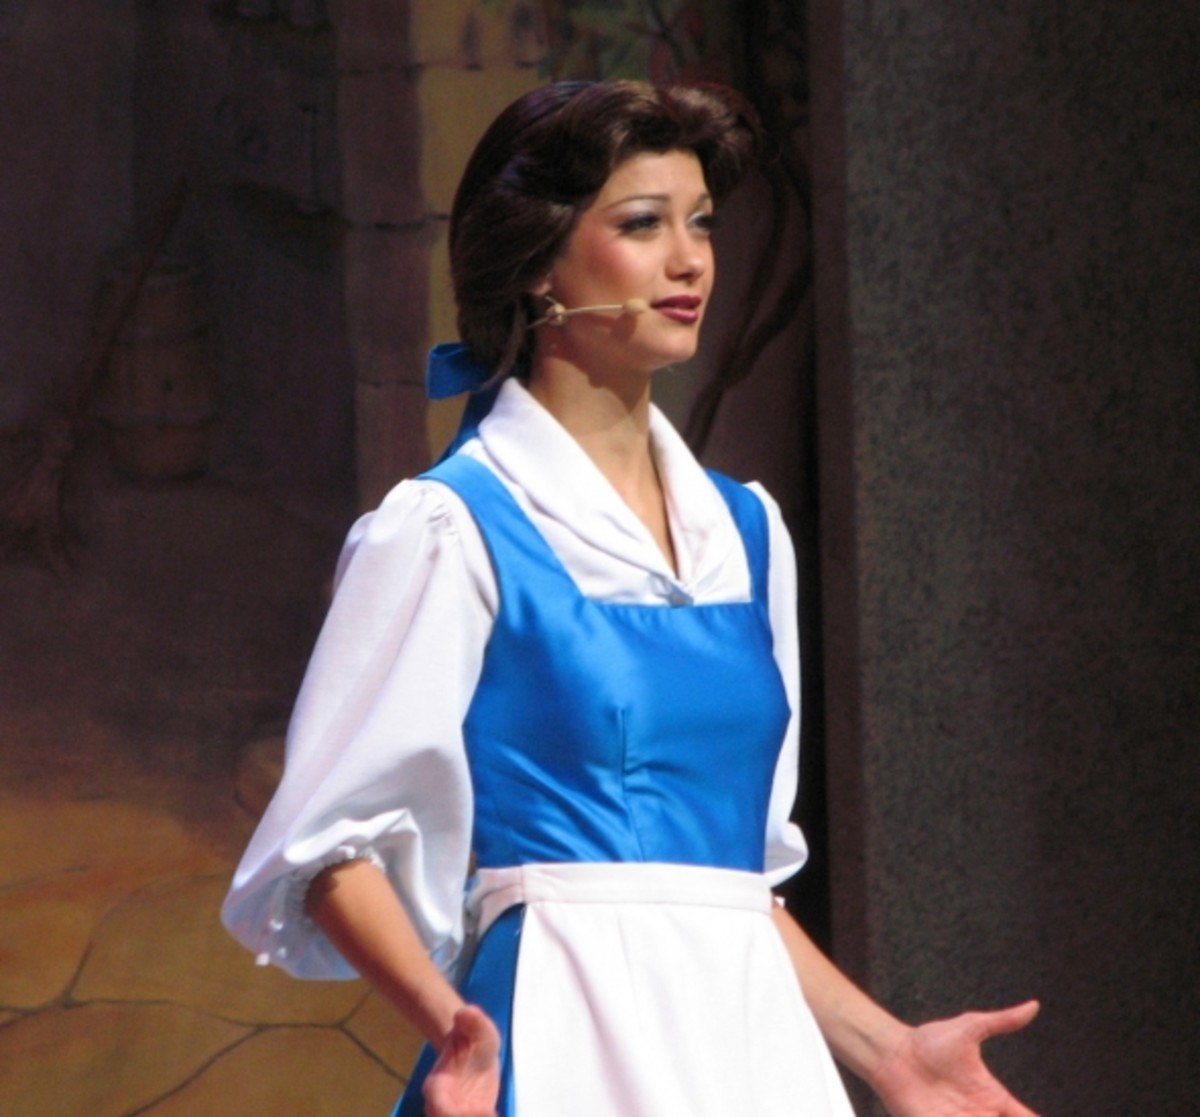 Here's a shot from the Beauty and the Beast show at Disney's Hollywood Studios in Florida. The theme-park implementation of this dress is rather flashy. They use a very bright shade of blue in a shiny fabric that appears to be some kind of satin.  Th